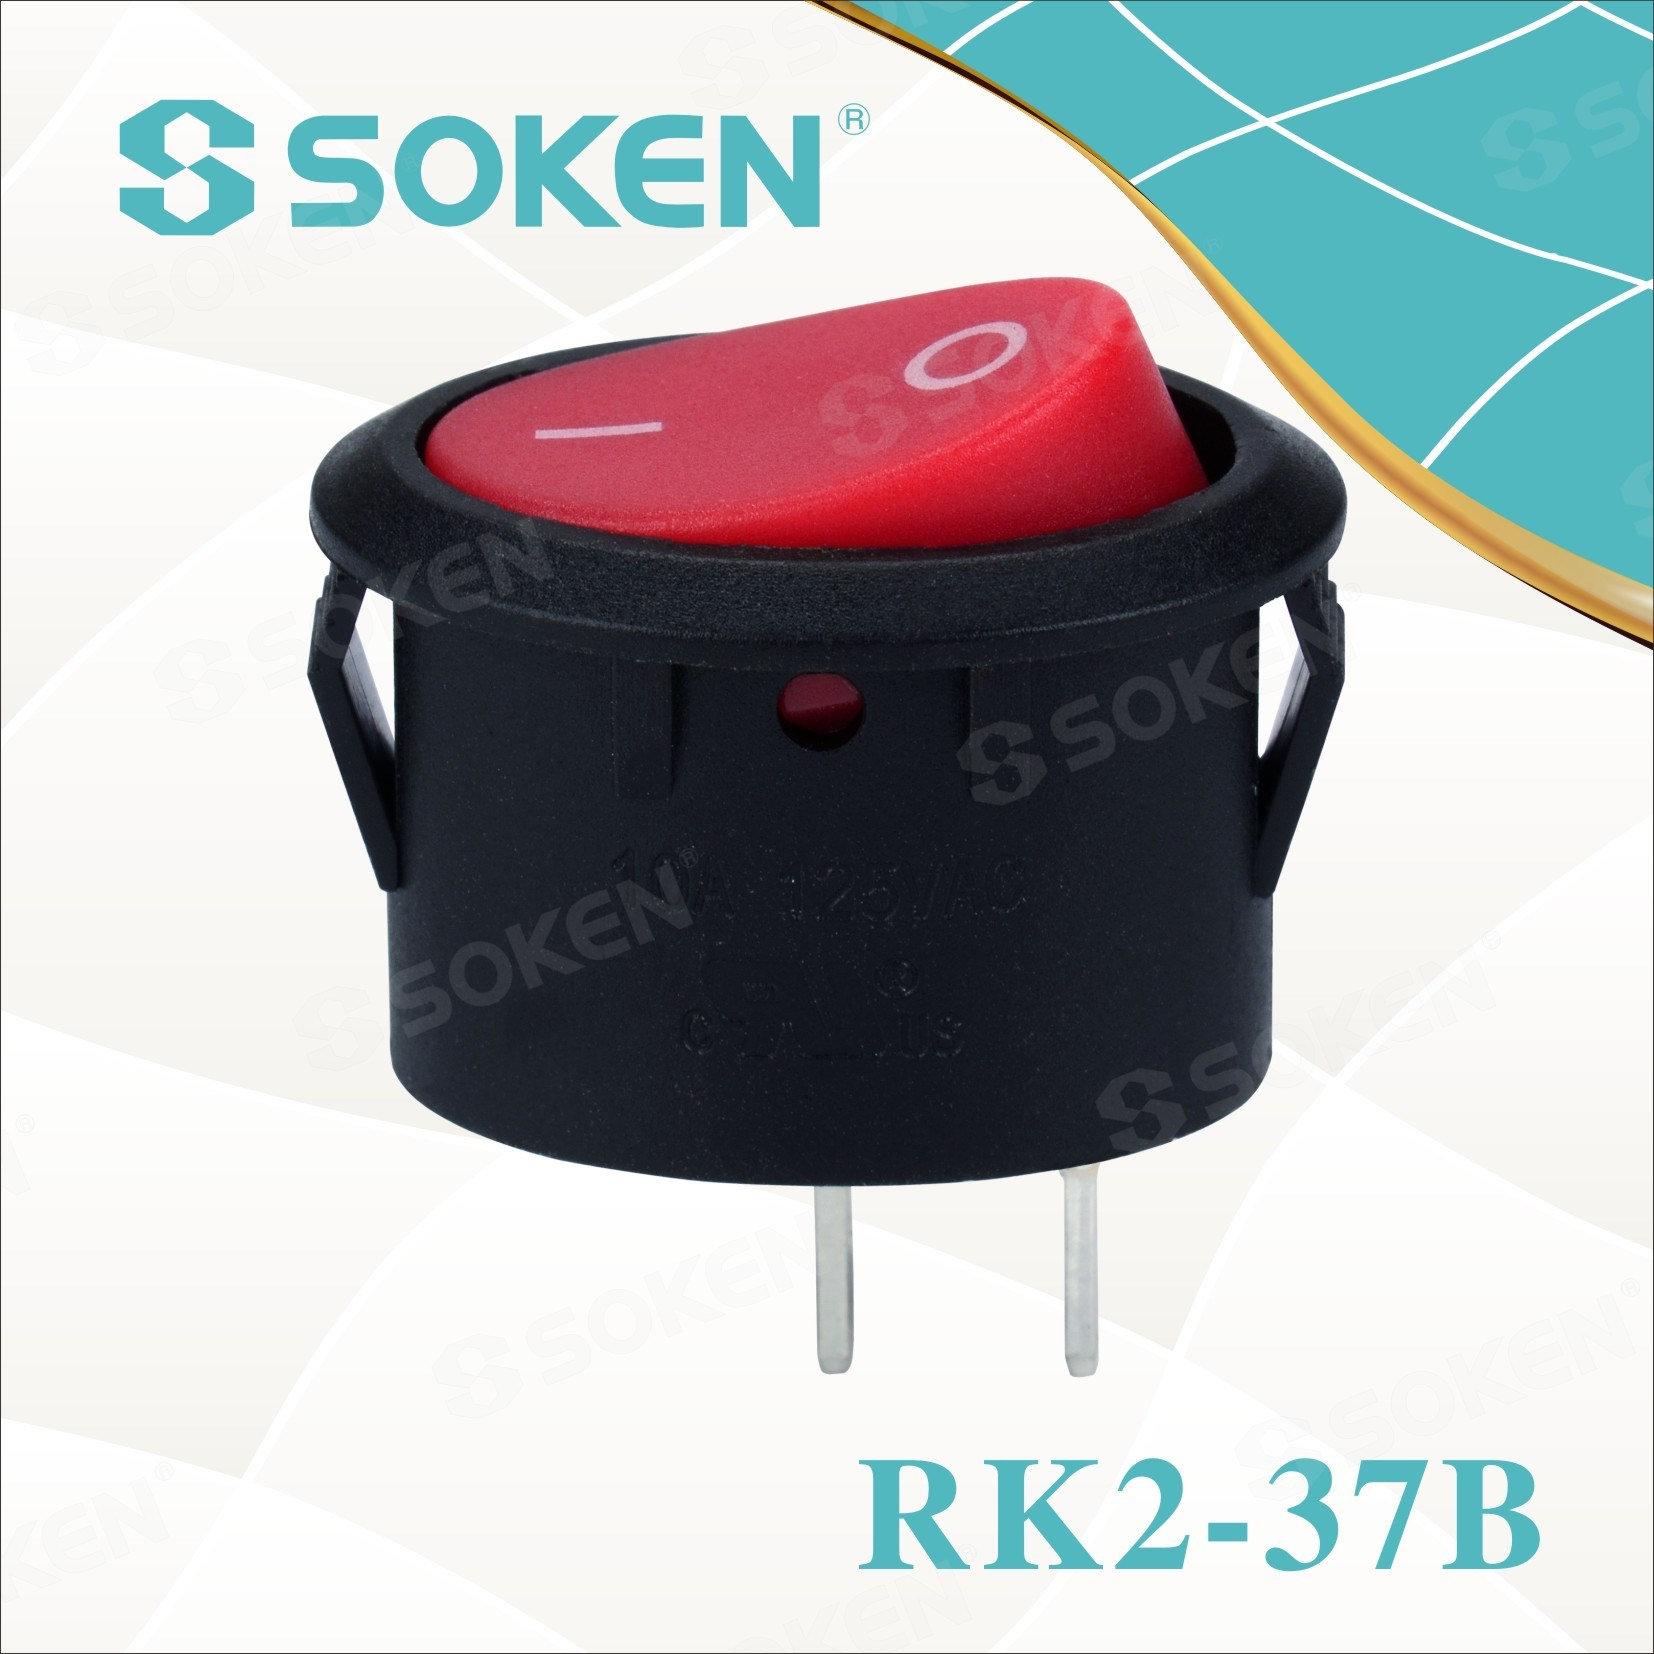 Ovaal Rocker Switch Rk2-37b